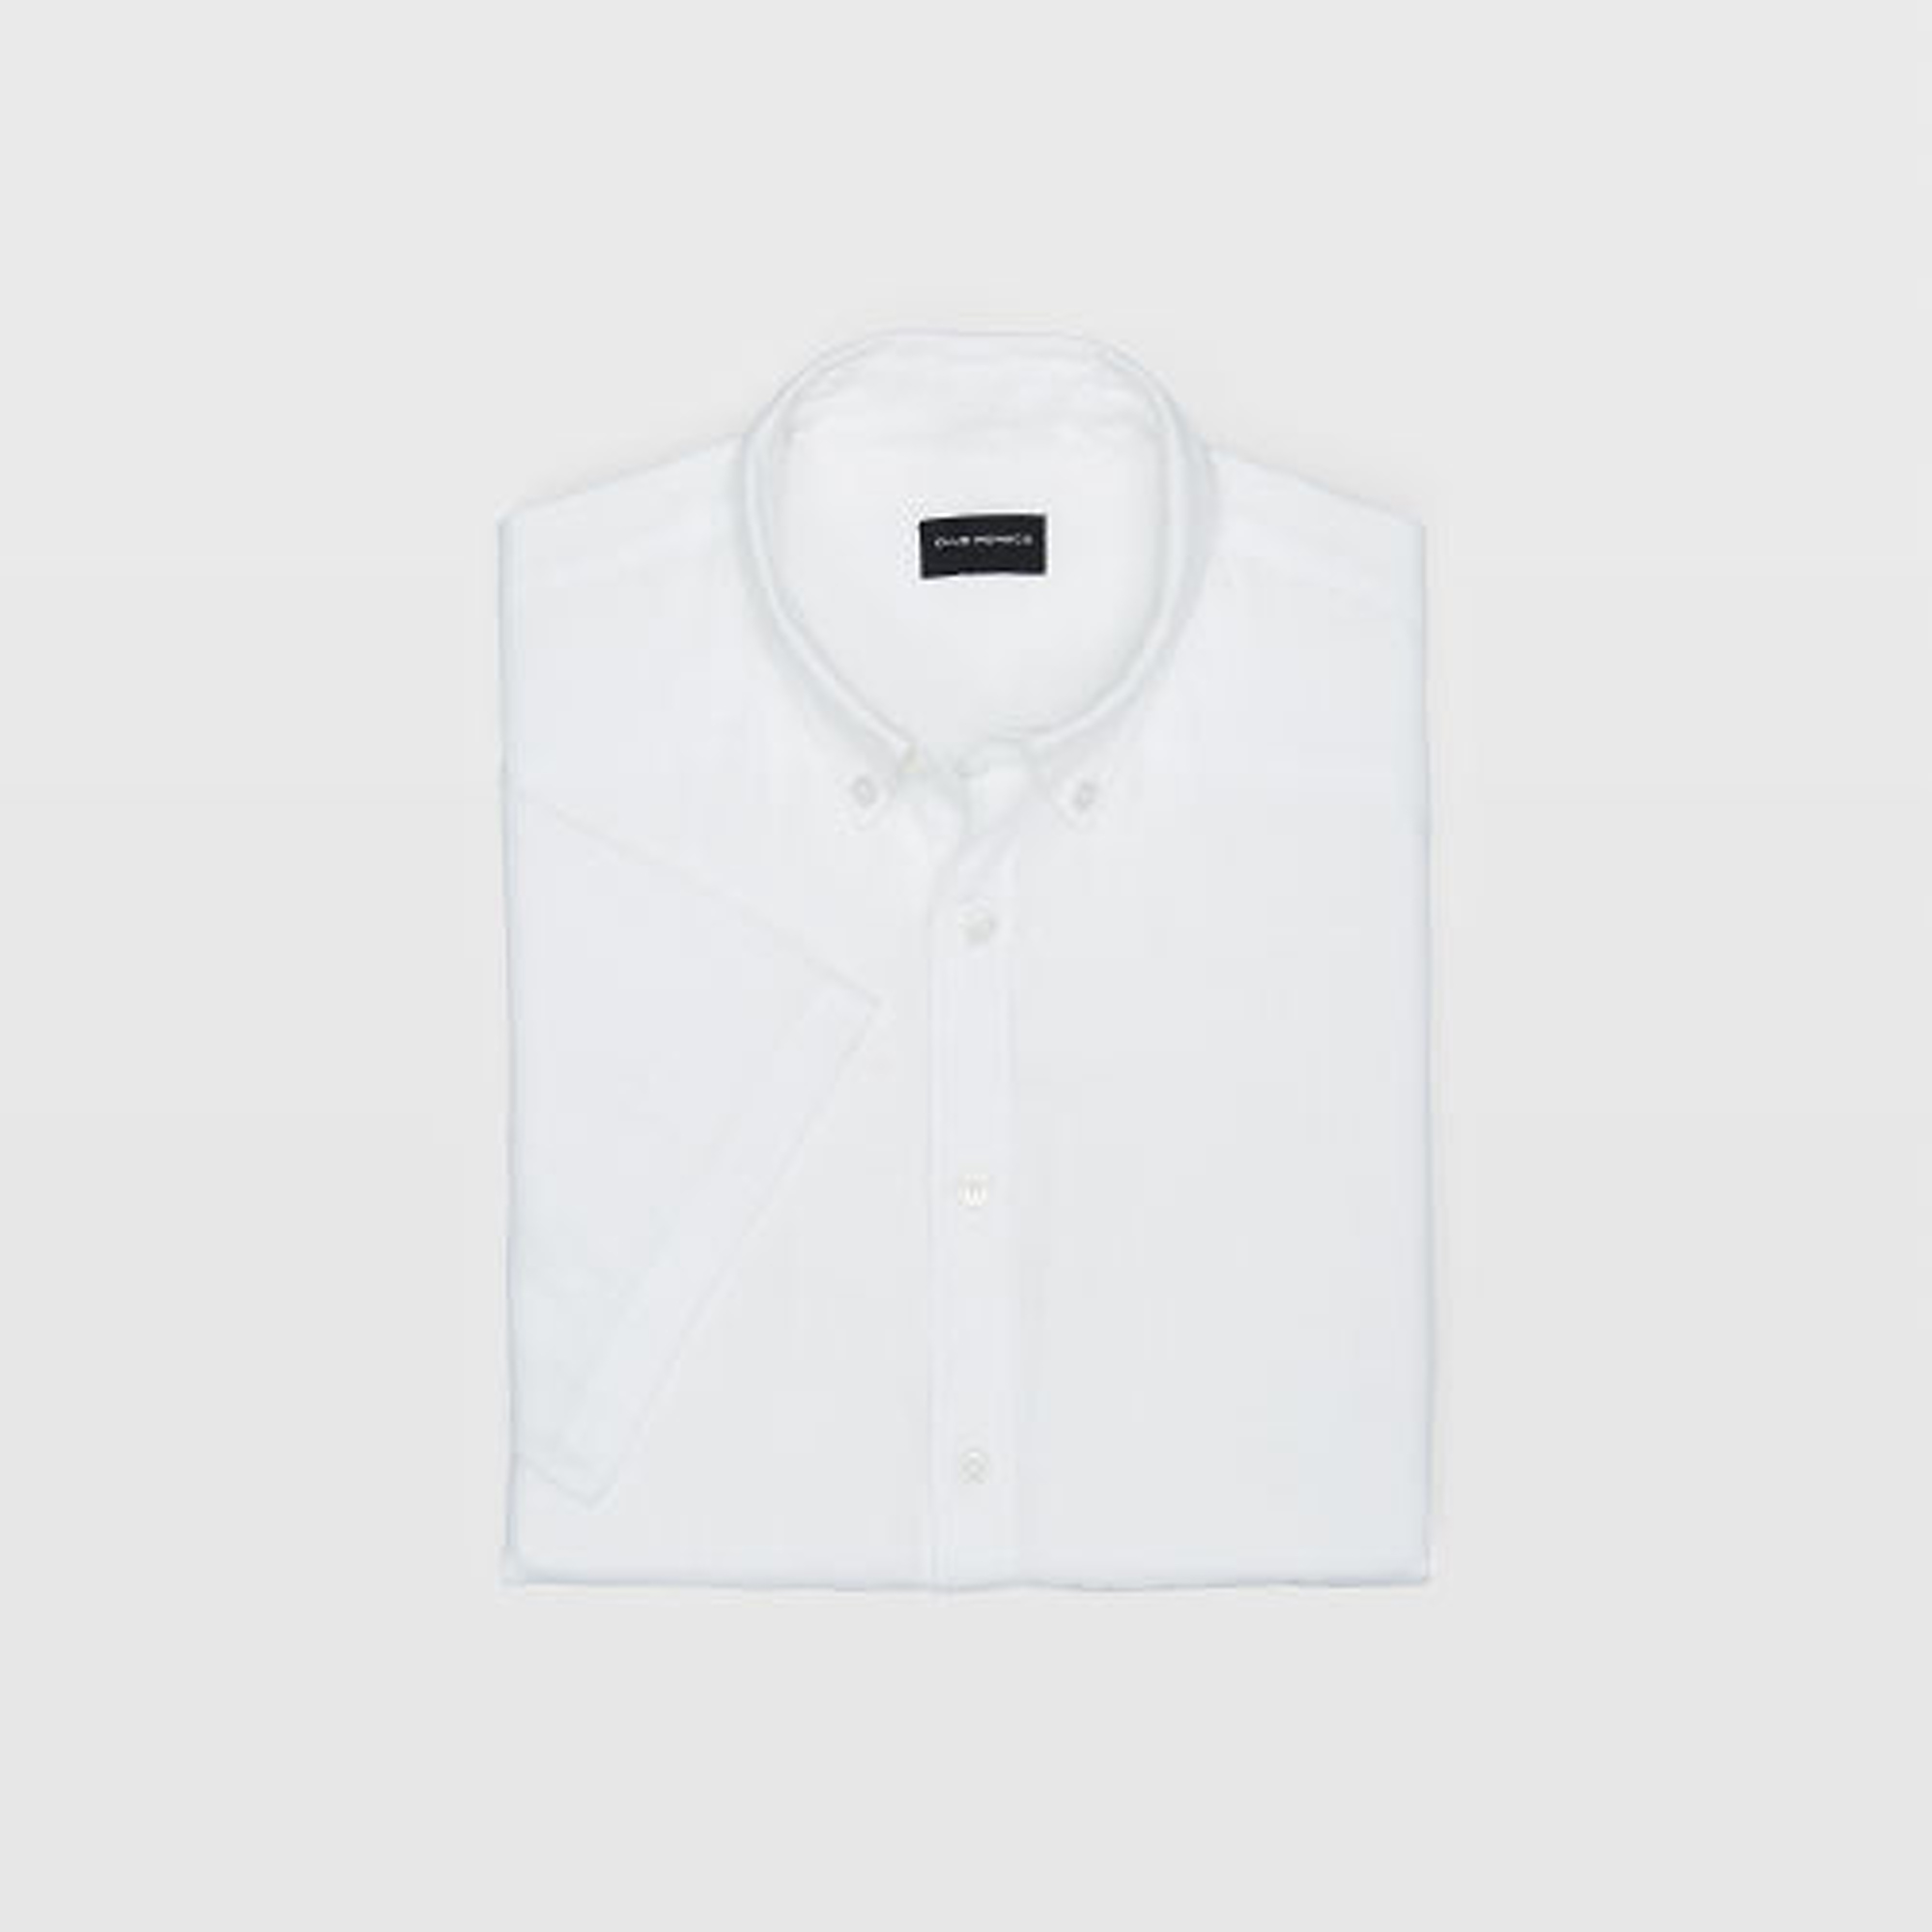 Slim Cross Dye Linen Shirt   HK$1,090